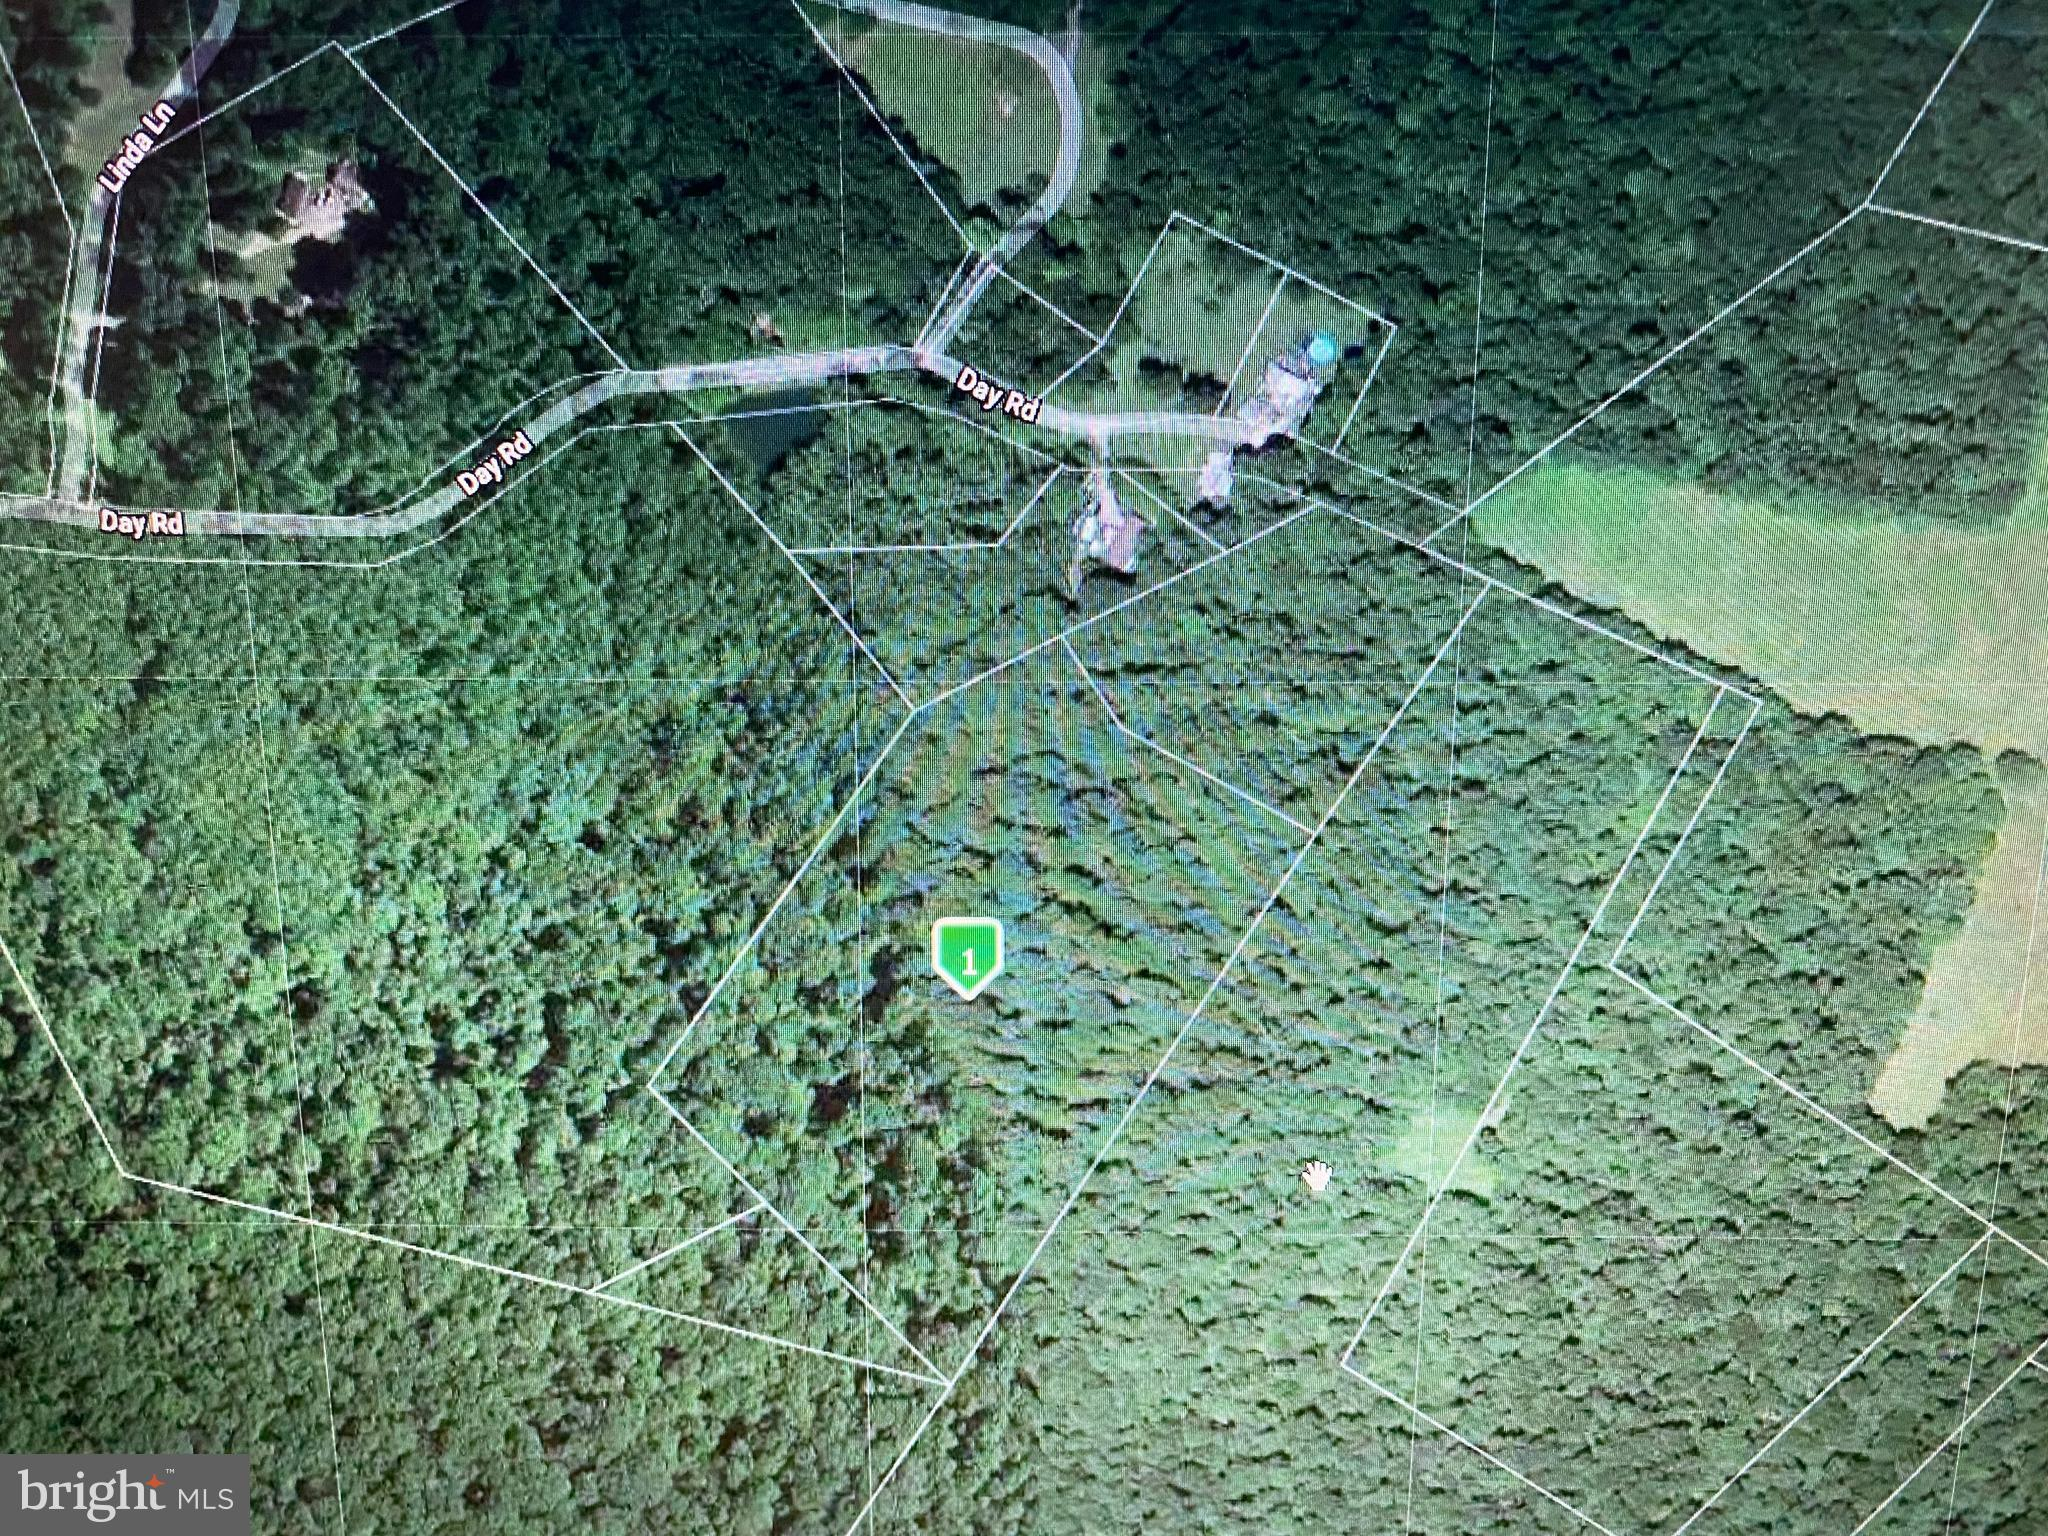 This Beautiful 10 acre wooded lot is at the end of a dead end road and is surrounded by large tracts of wooded land. If you are looking for privacy this will more than meet your needs. The lot is accessed by a right of way through the adjacent properties.